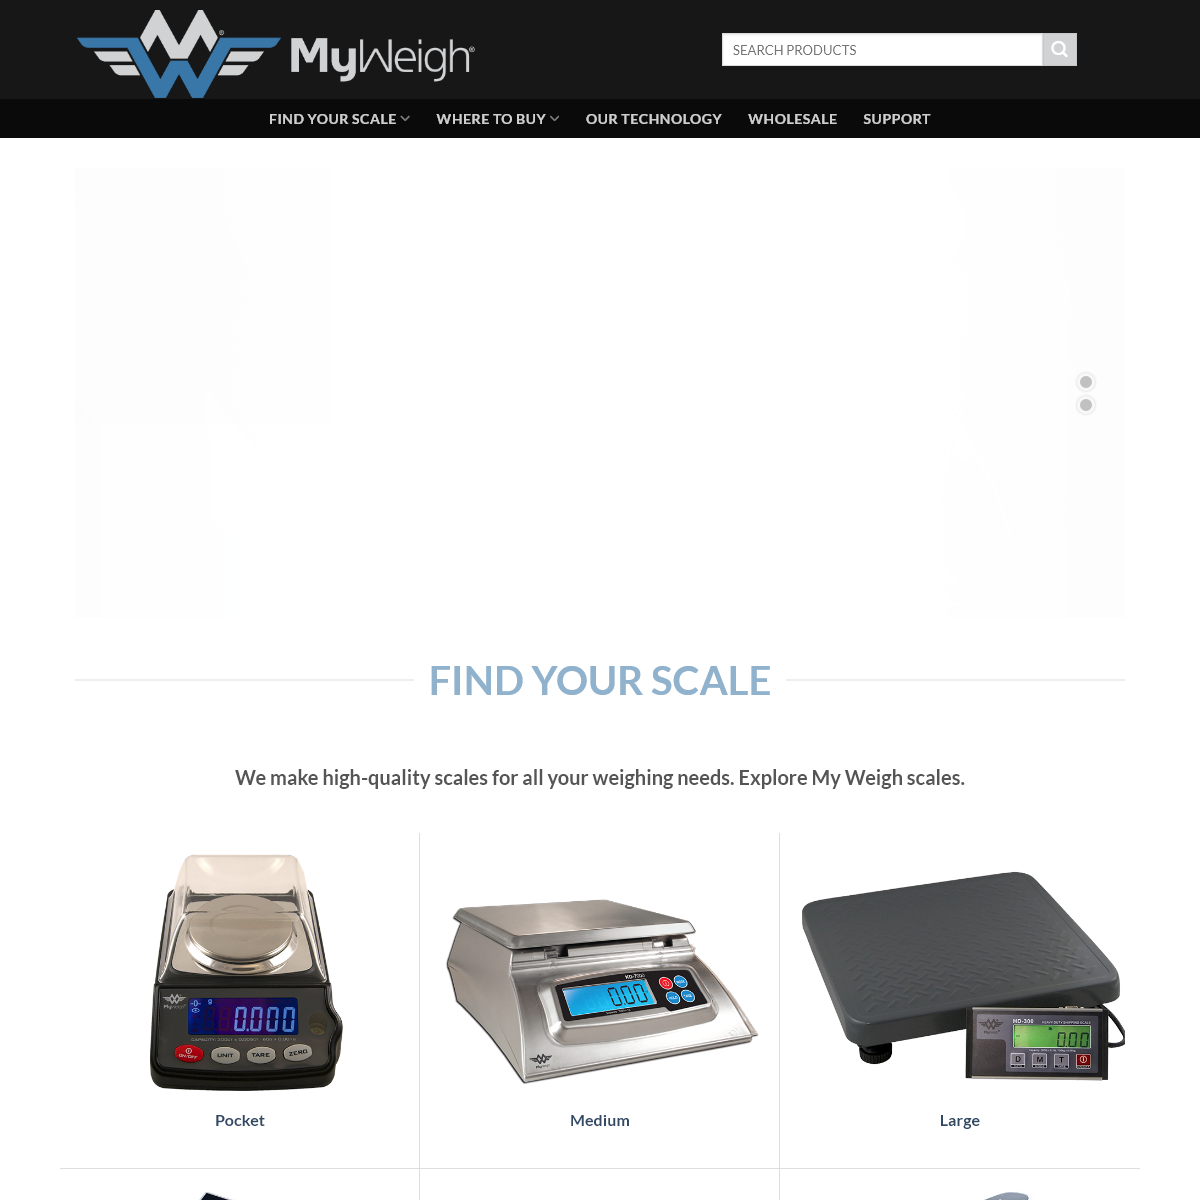 My Weigh - The best digital scales on earth.